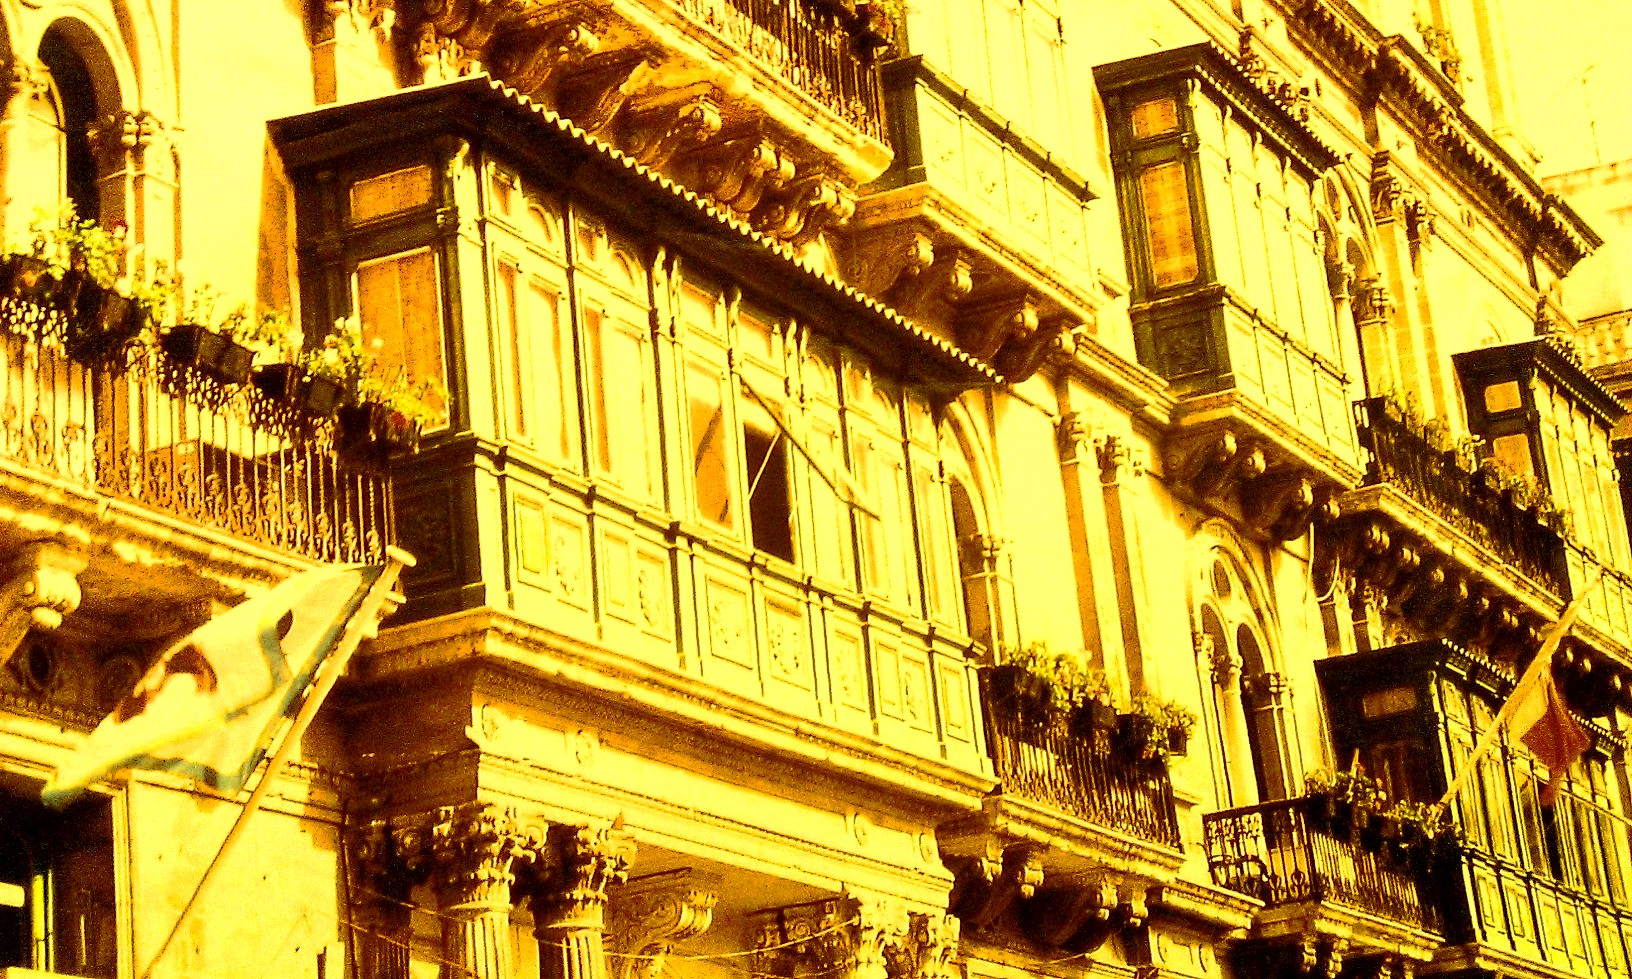 City of Valletta - Malta Cathrin Eszbach